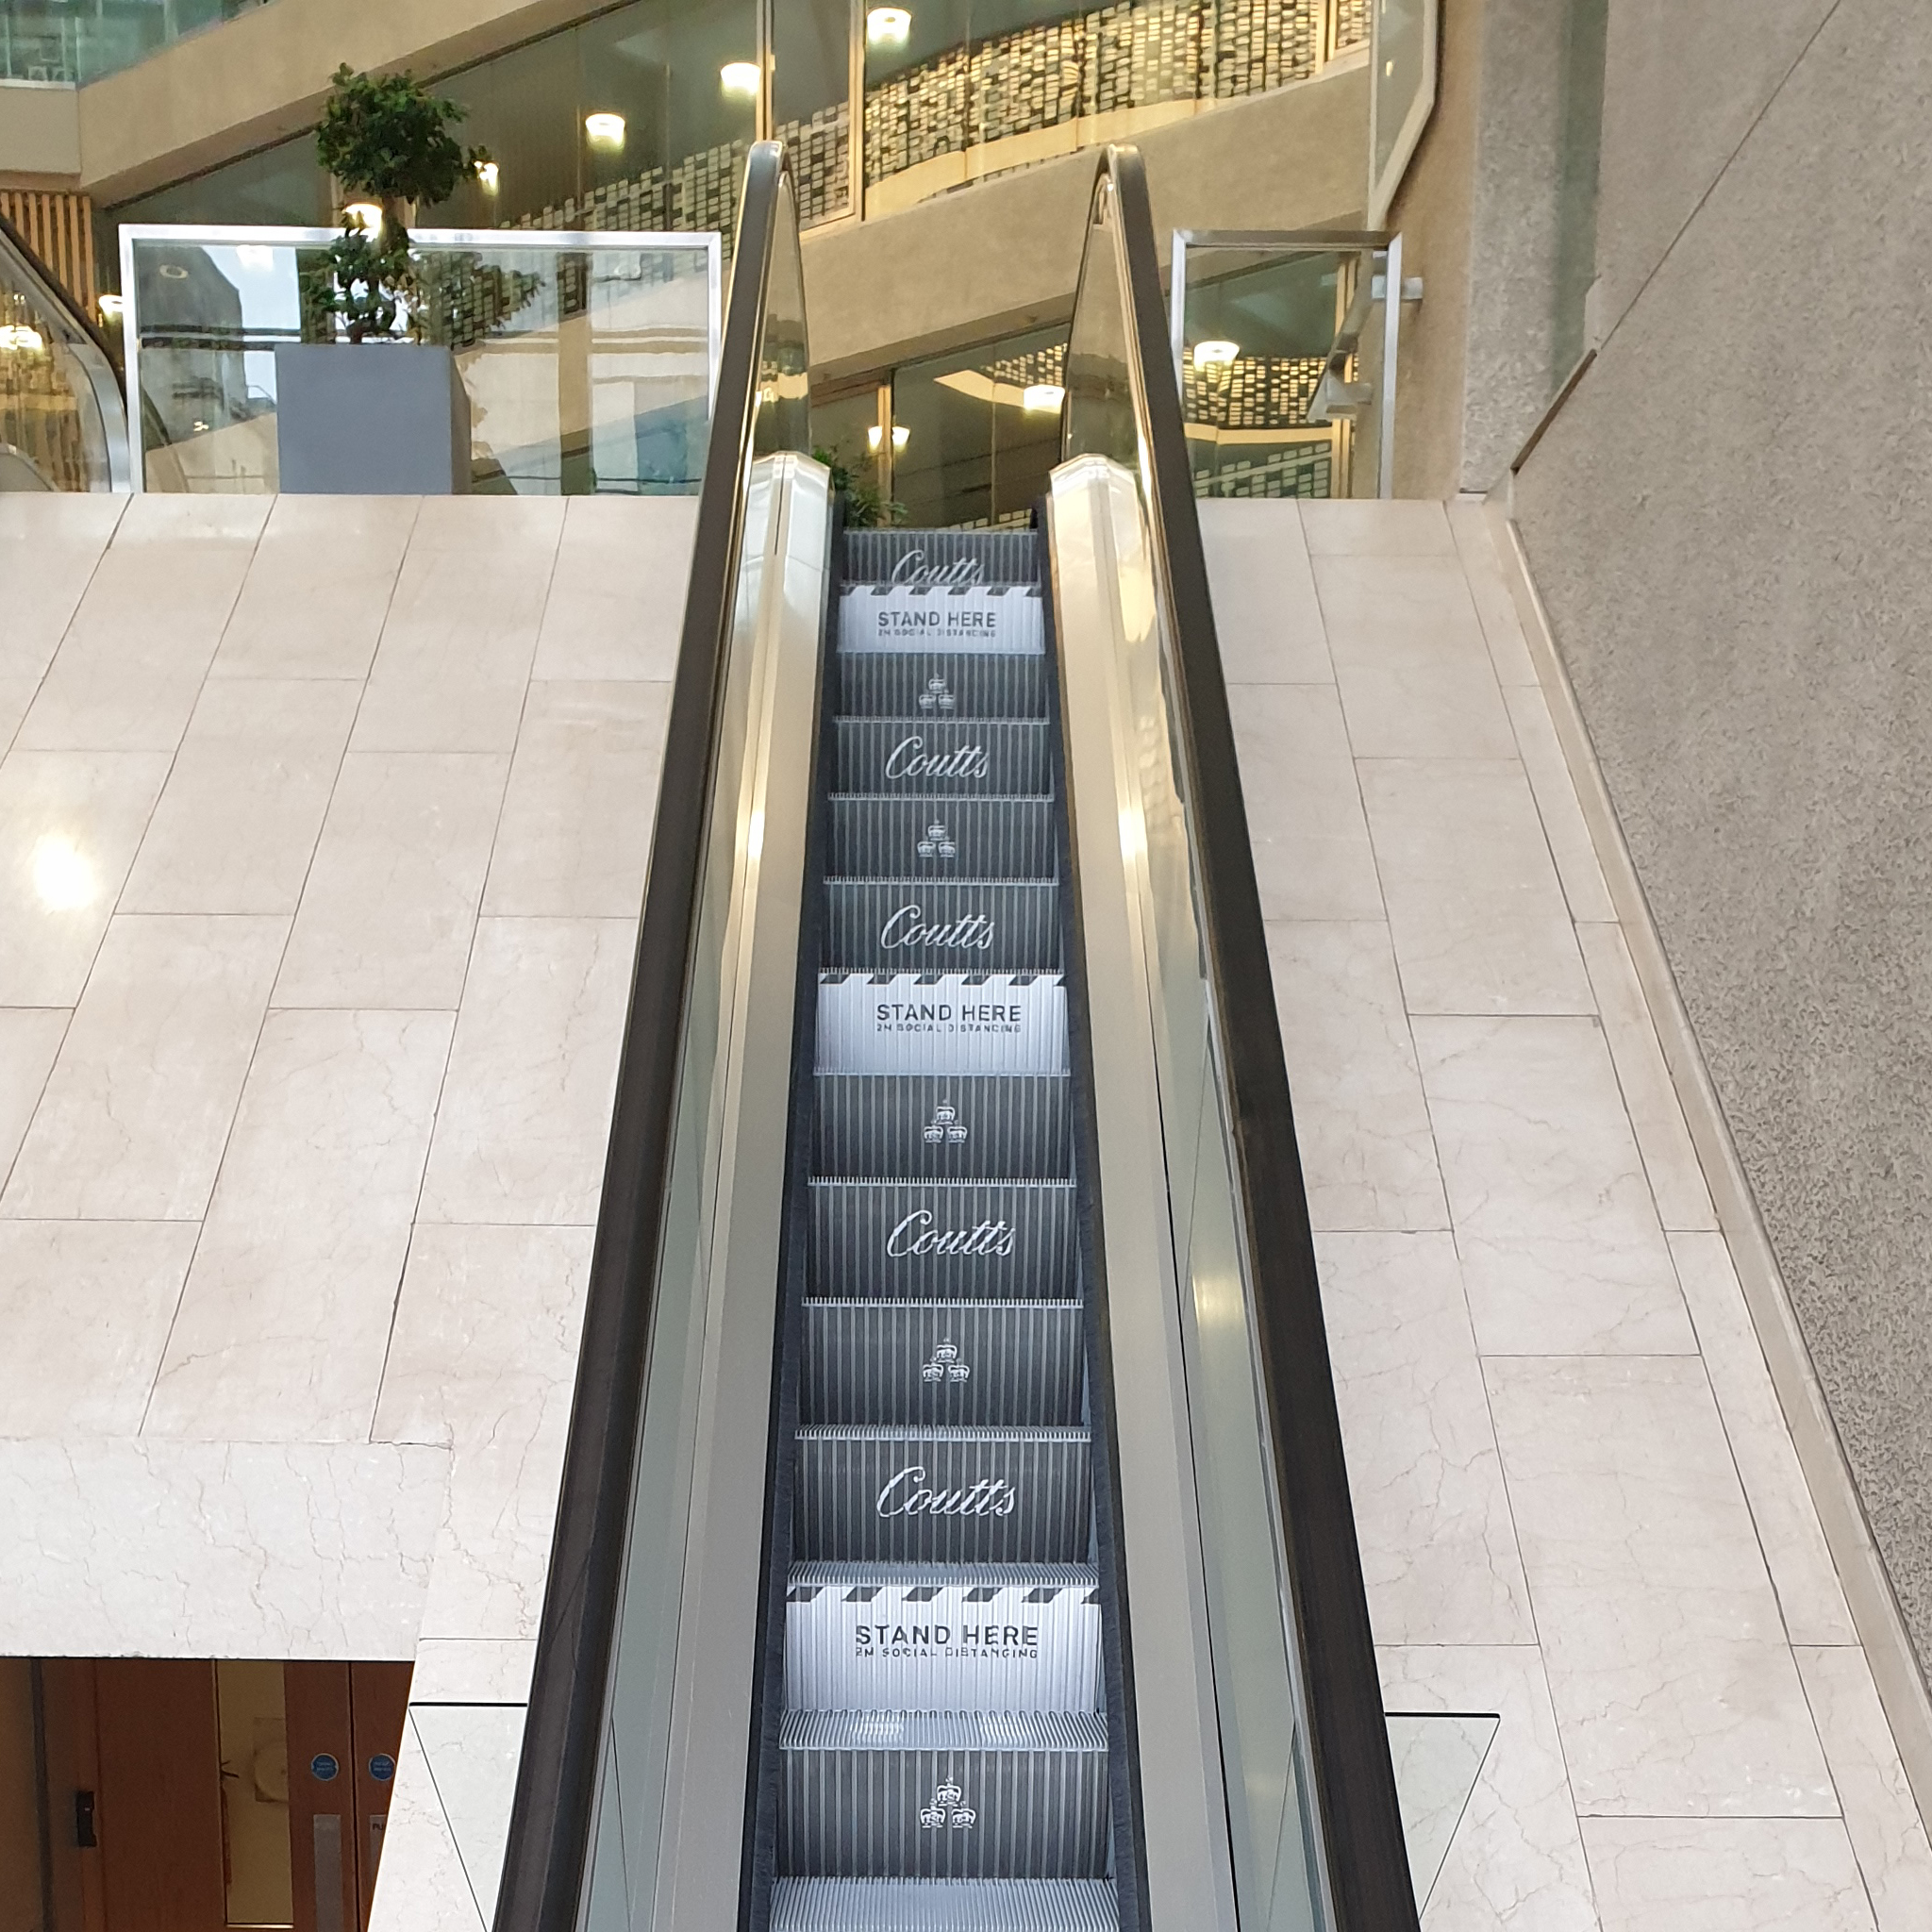 Coutts Bank Social Distancing Awareness Escalator Step Branding